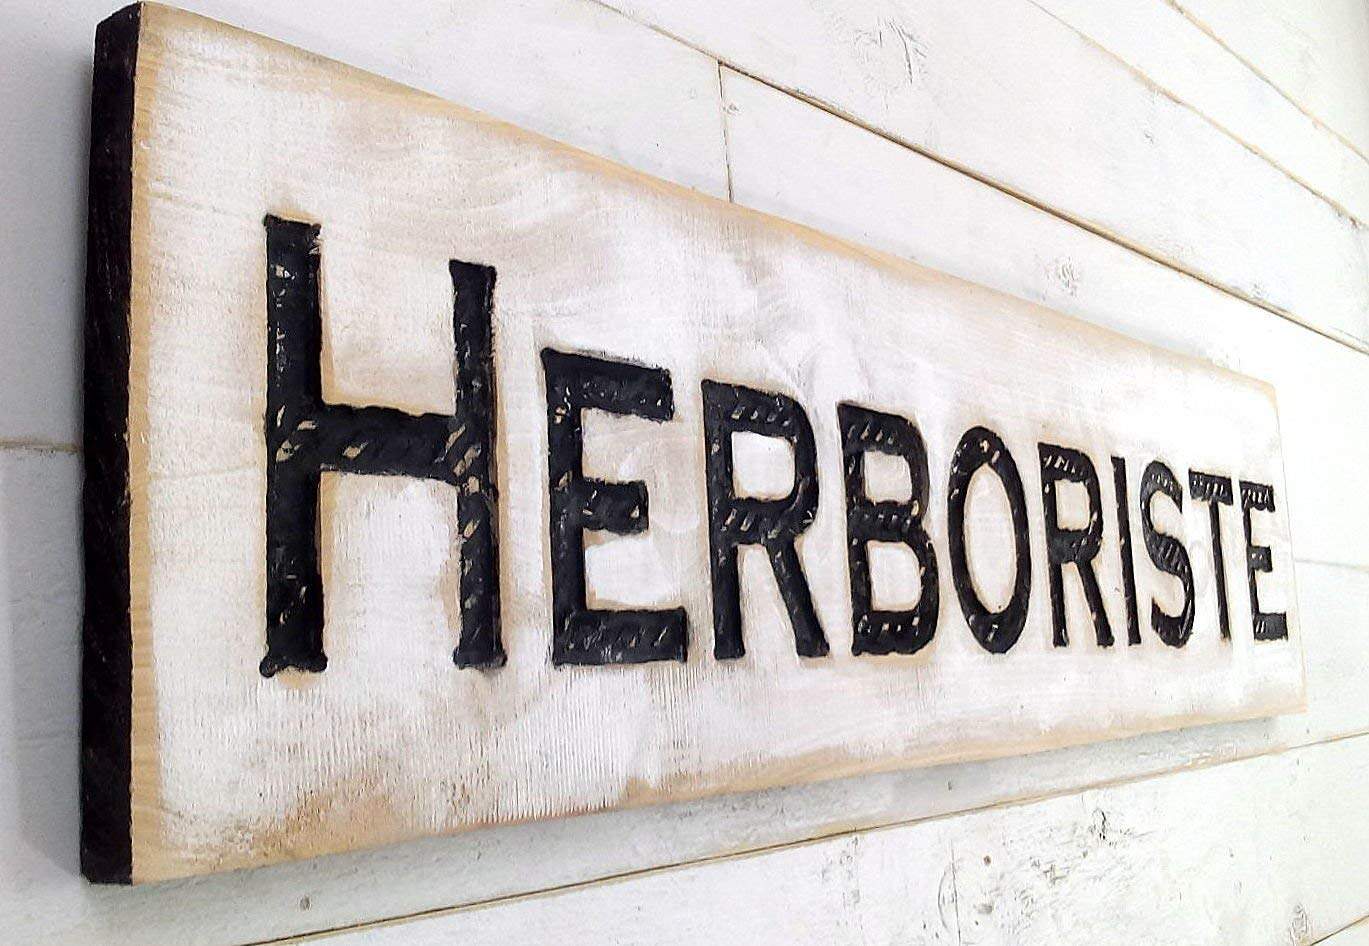 Large Herboriste online shopping Sign Horizontal - Carved Wood Kansas City Mall a 40